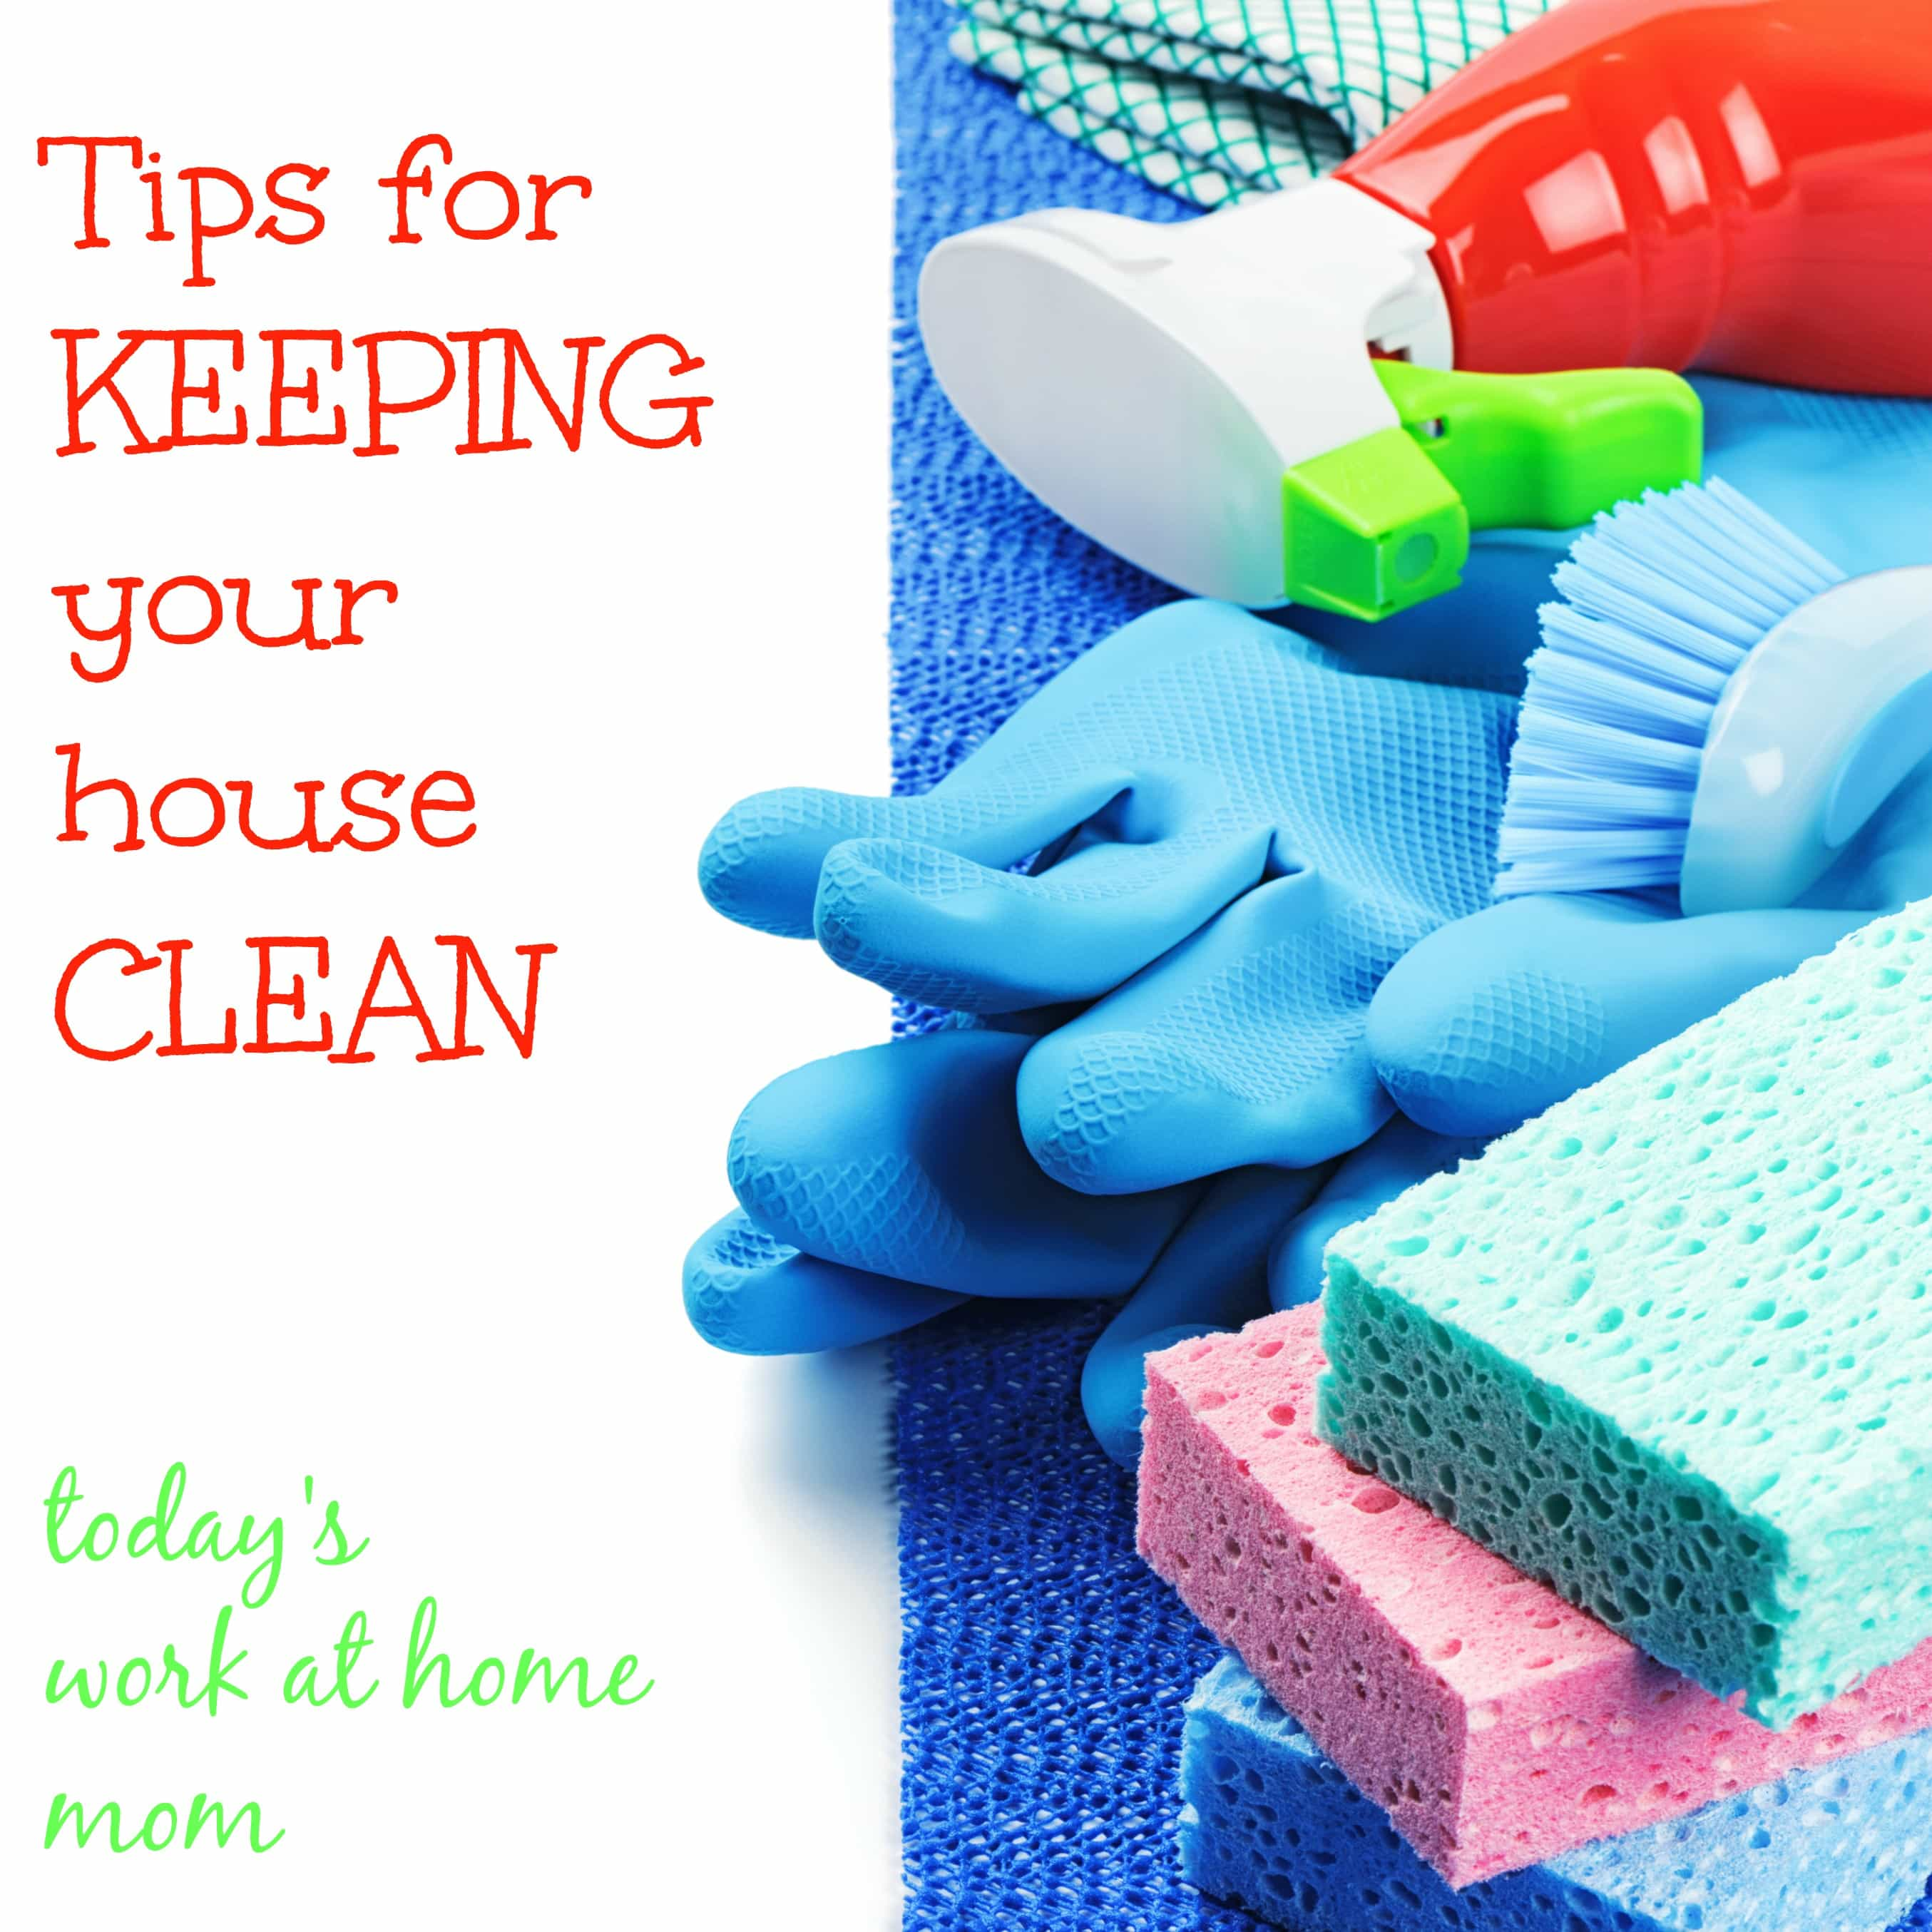 Tips on how to keep your house clean todays work at home mom How to keep house clean